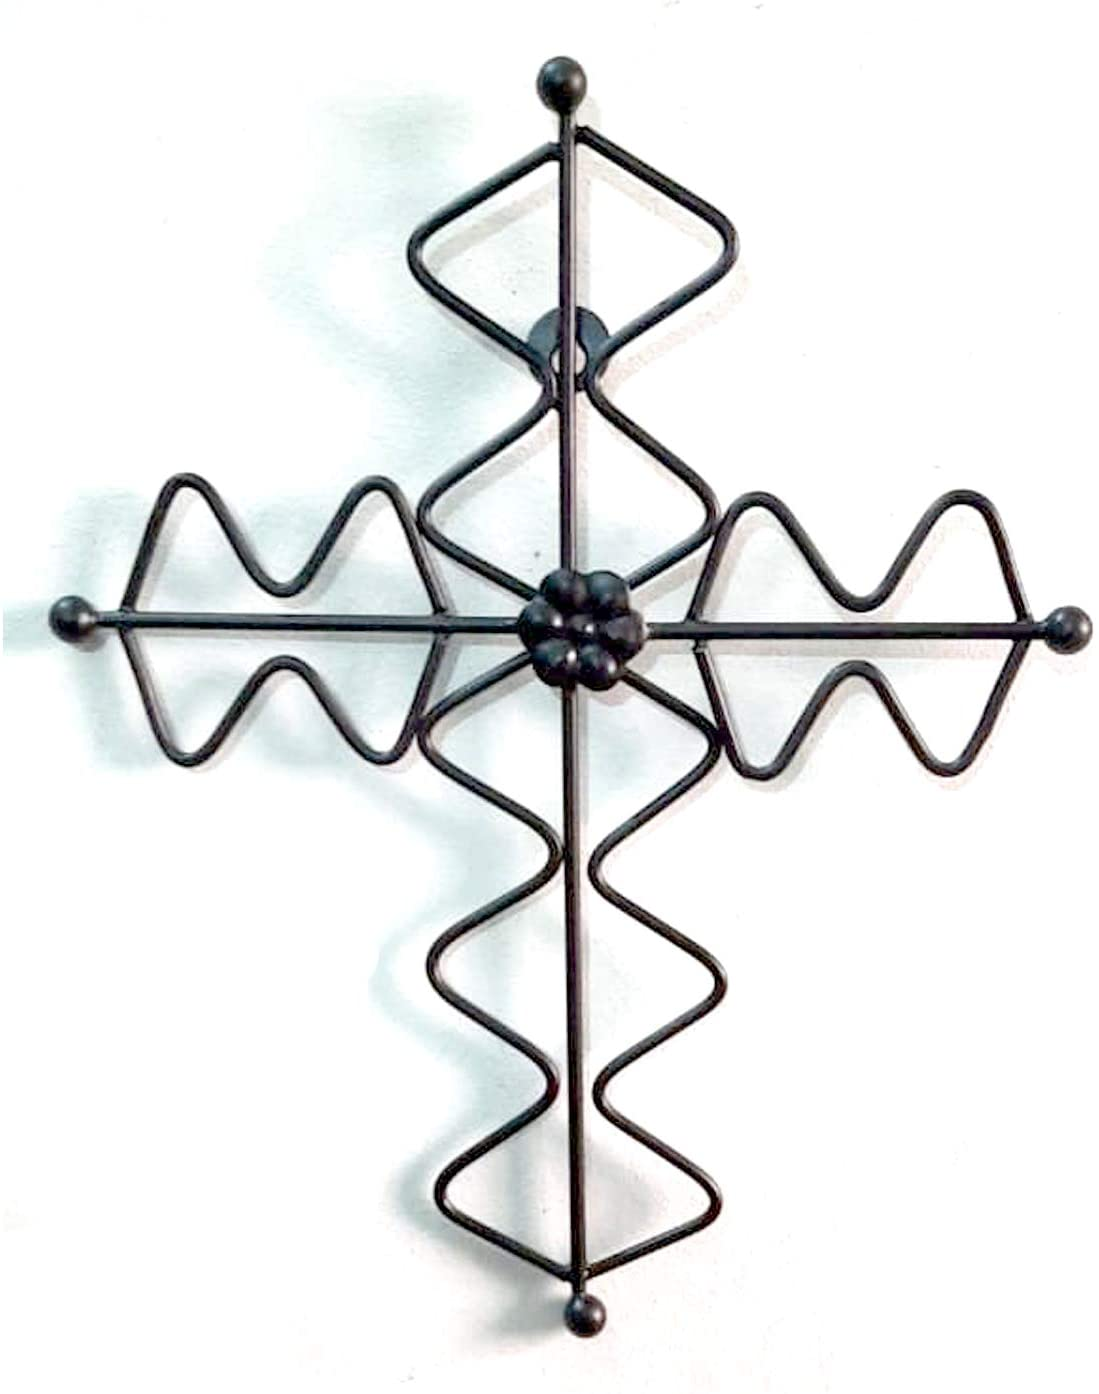 Ardour 13.2 x 9.7 Inch Large Metal Decorative Hanging Wall Cross.Metal Wall Crosses for Home Decor - Black